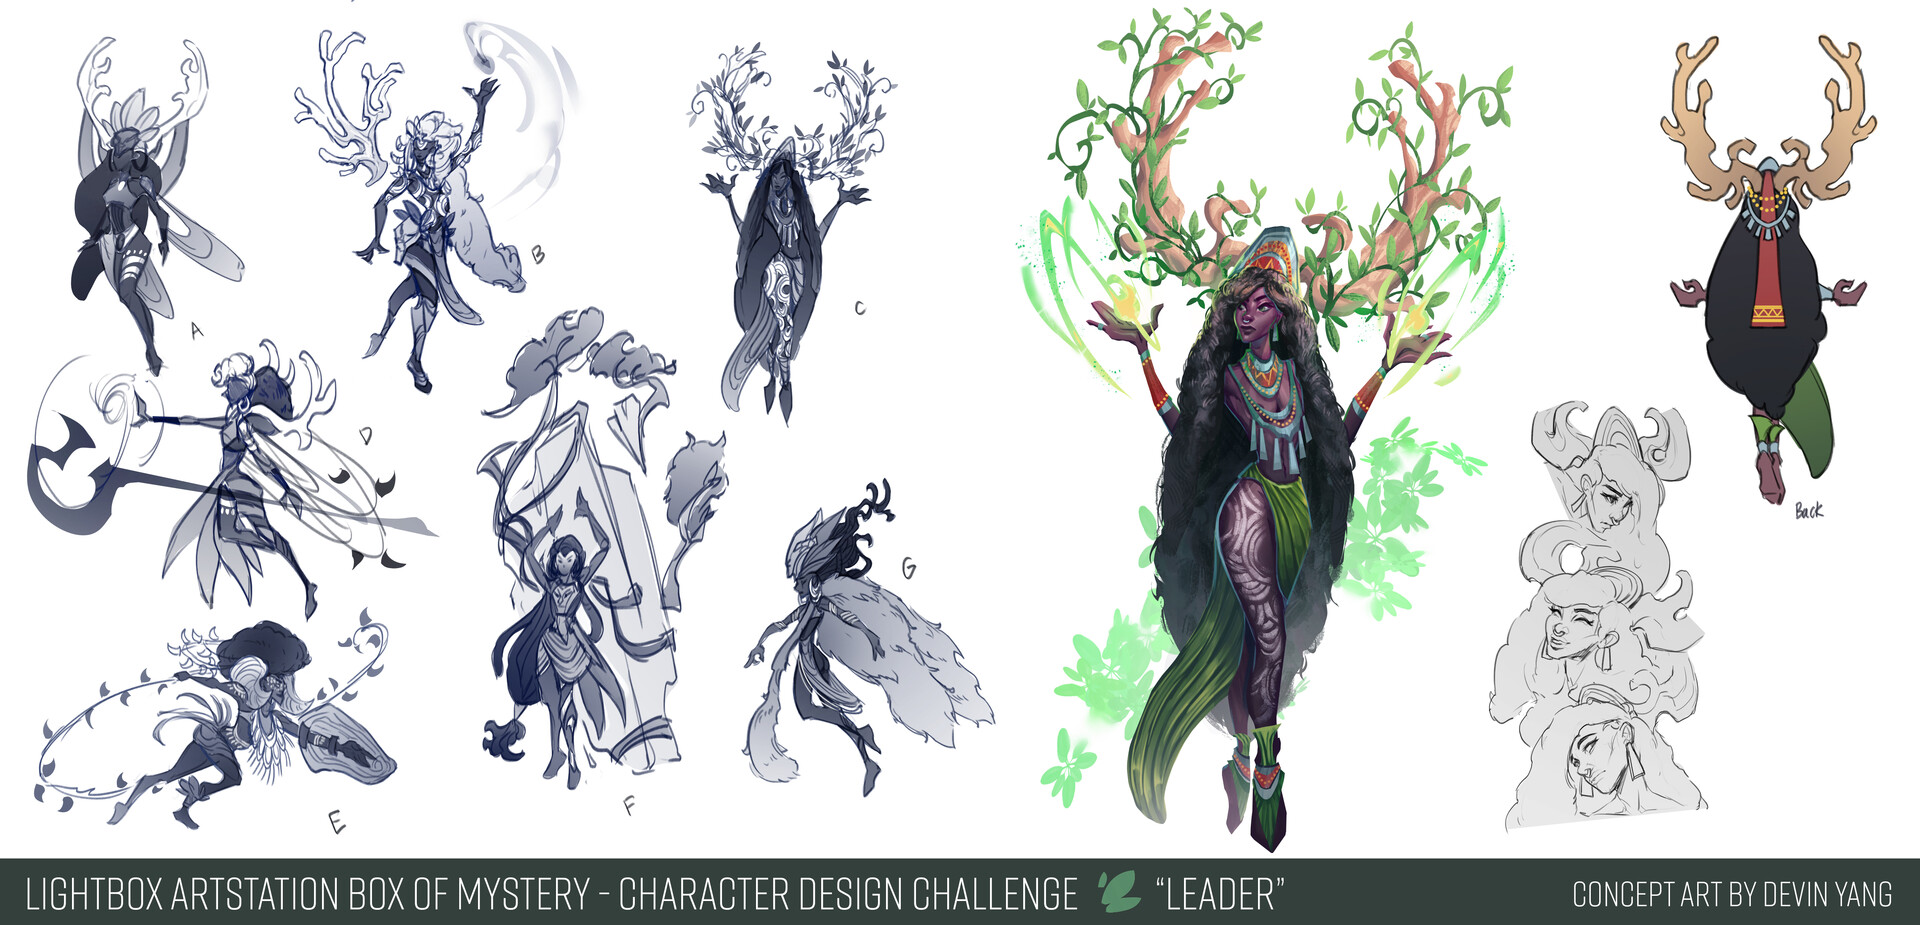 Sketches/exploration + callouts for Leader character